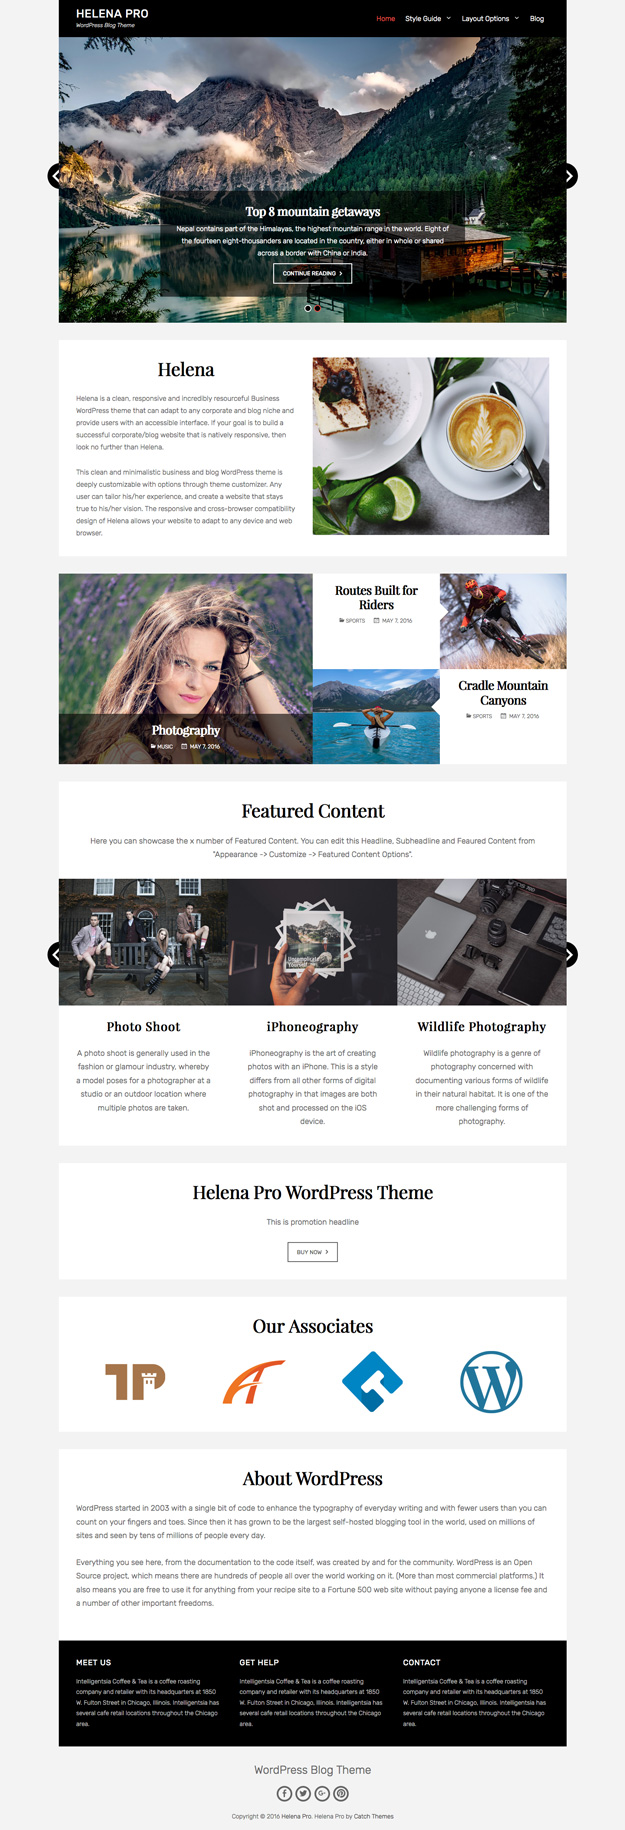 Helena Pro, is a WordPress theme for bloggers who are looking to create a strong social media presence.